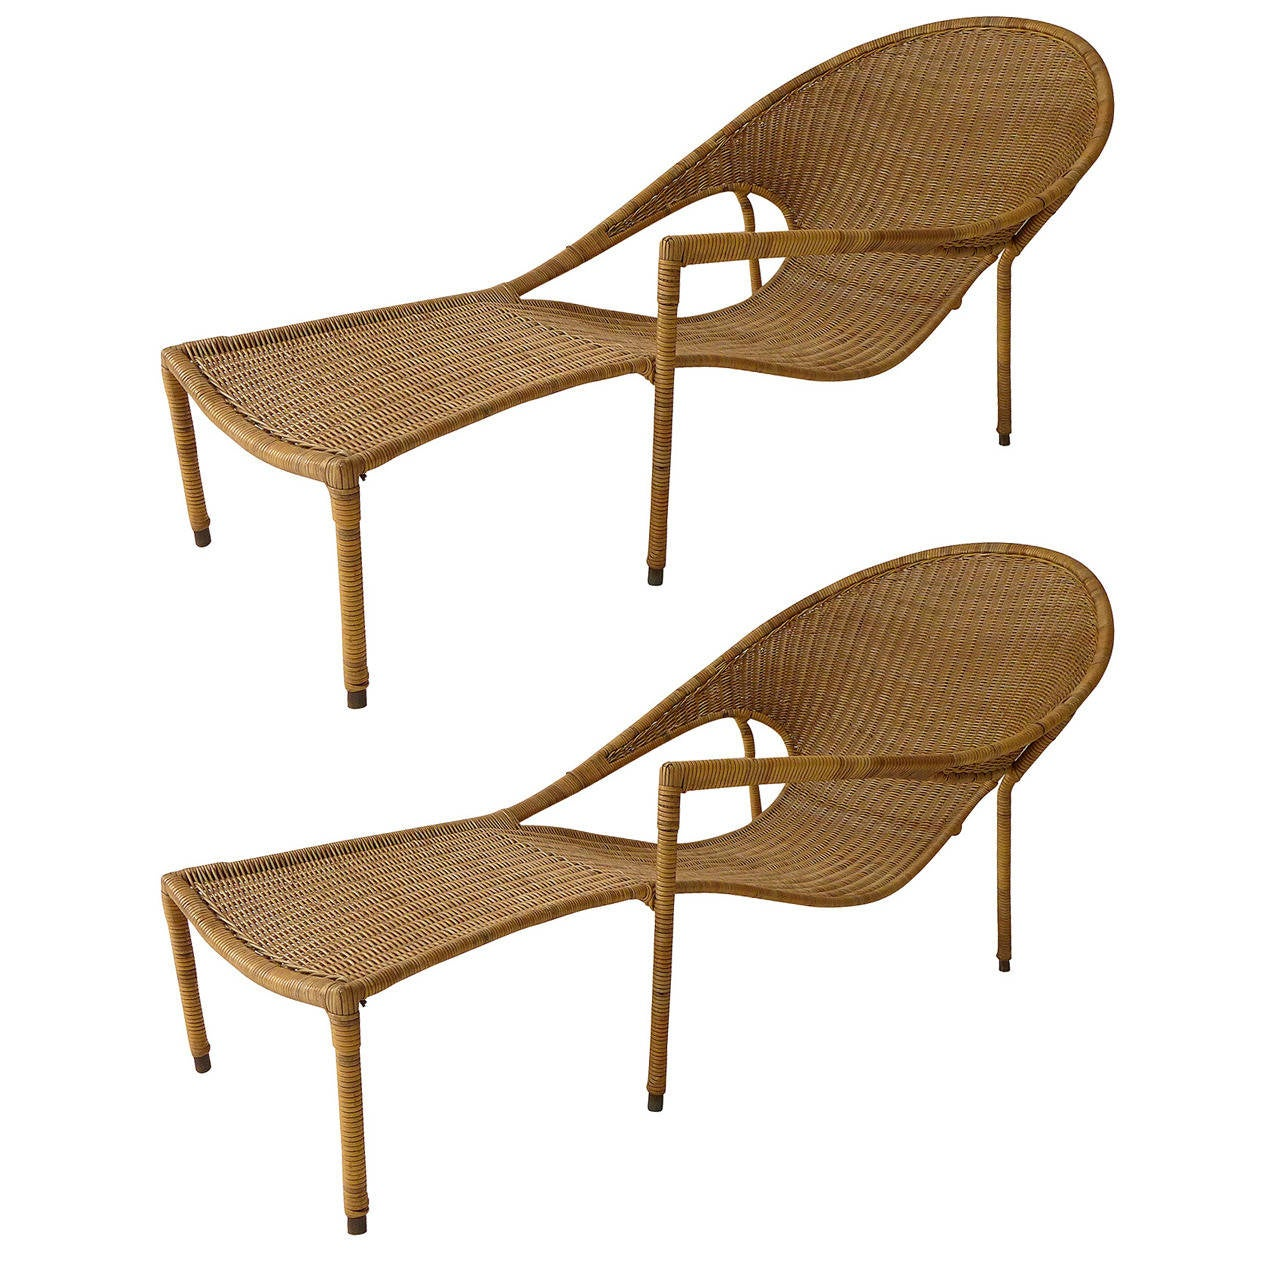 Pair Of Sculptural Wicker Lounge Chairs By Francis Mair At